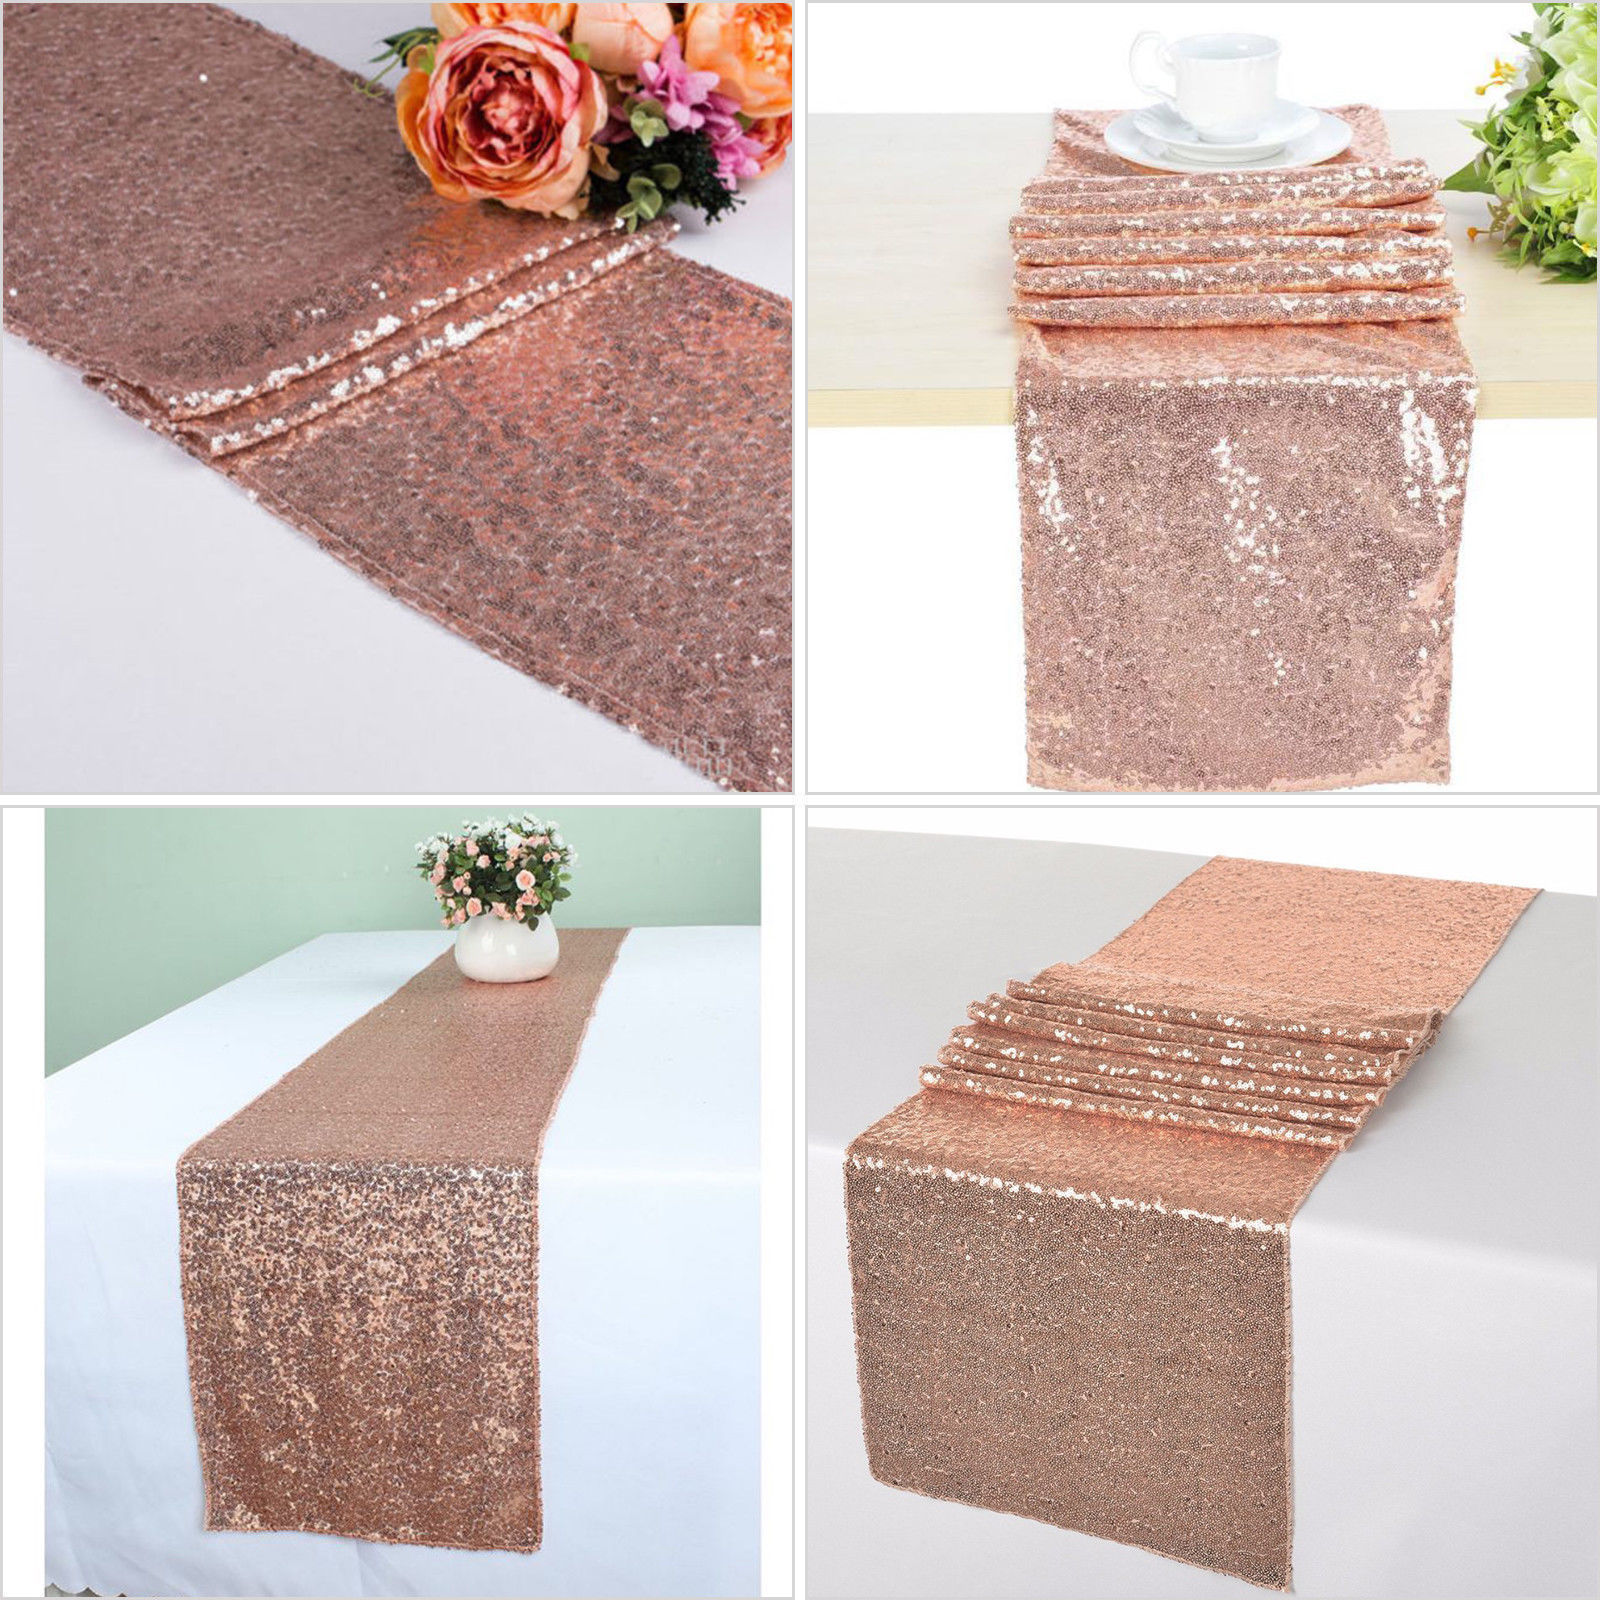 Sequin-Table-Runner-Tablecloth-Xmas-Party-Wedding-Decorations-12-034-x72-039-039-108-034-118-034 thumbnail 18